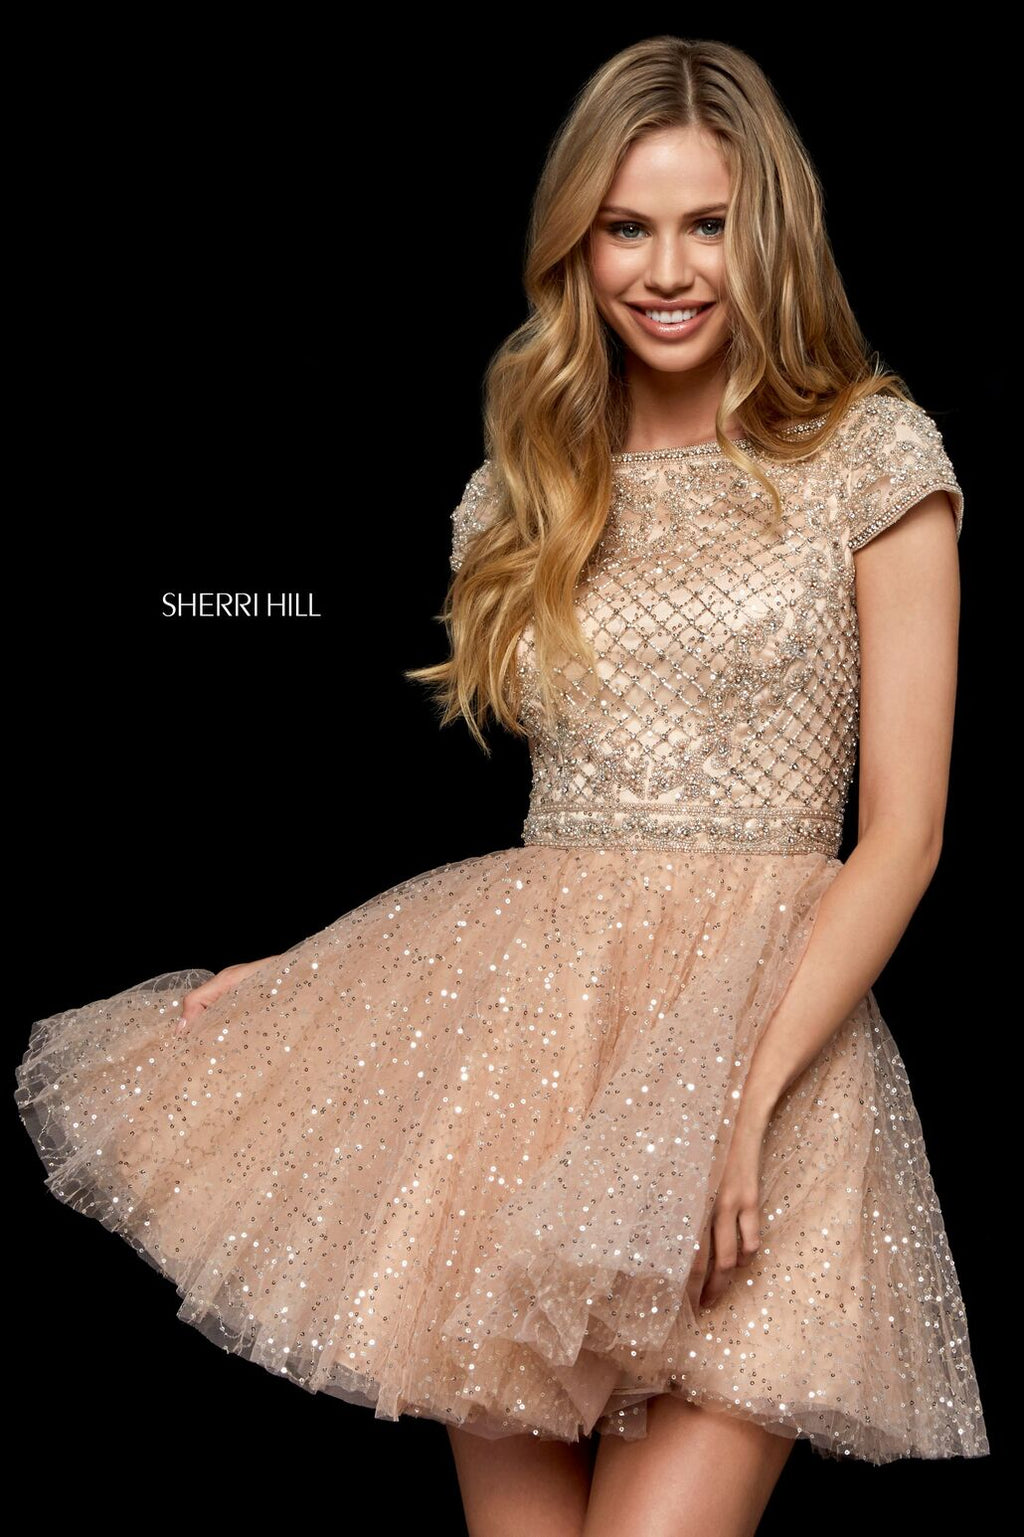 This Sherri Hill 52273 cocktail dress in nude/silver features a beaded bodice and a sequin tulle skirt.